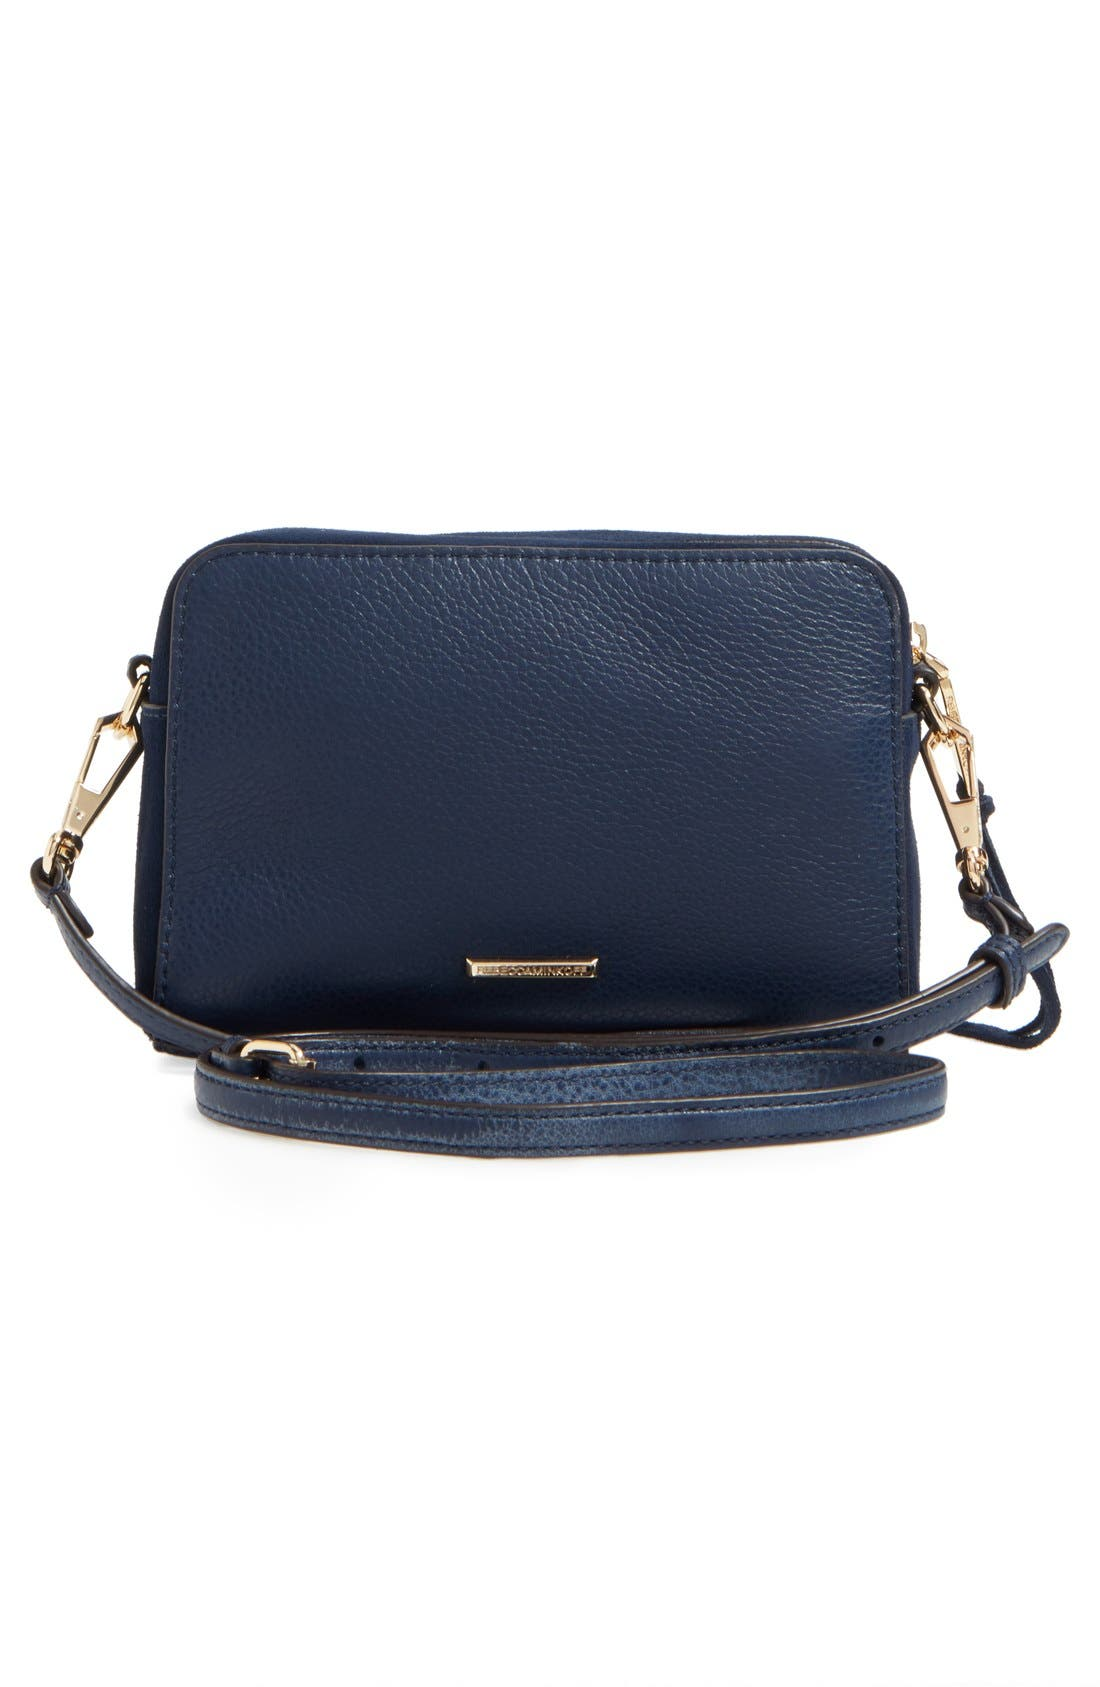 Alternate Image 3  - Rebecca Minkoff 'Sofia' Crossbody Bag